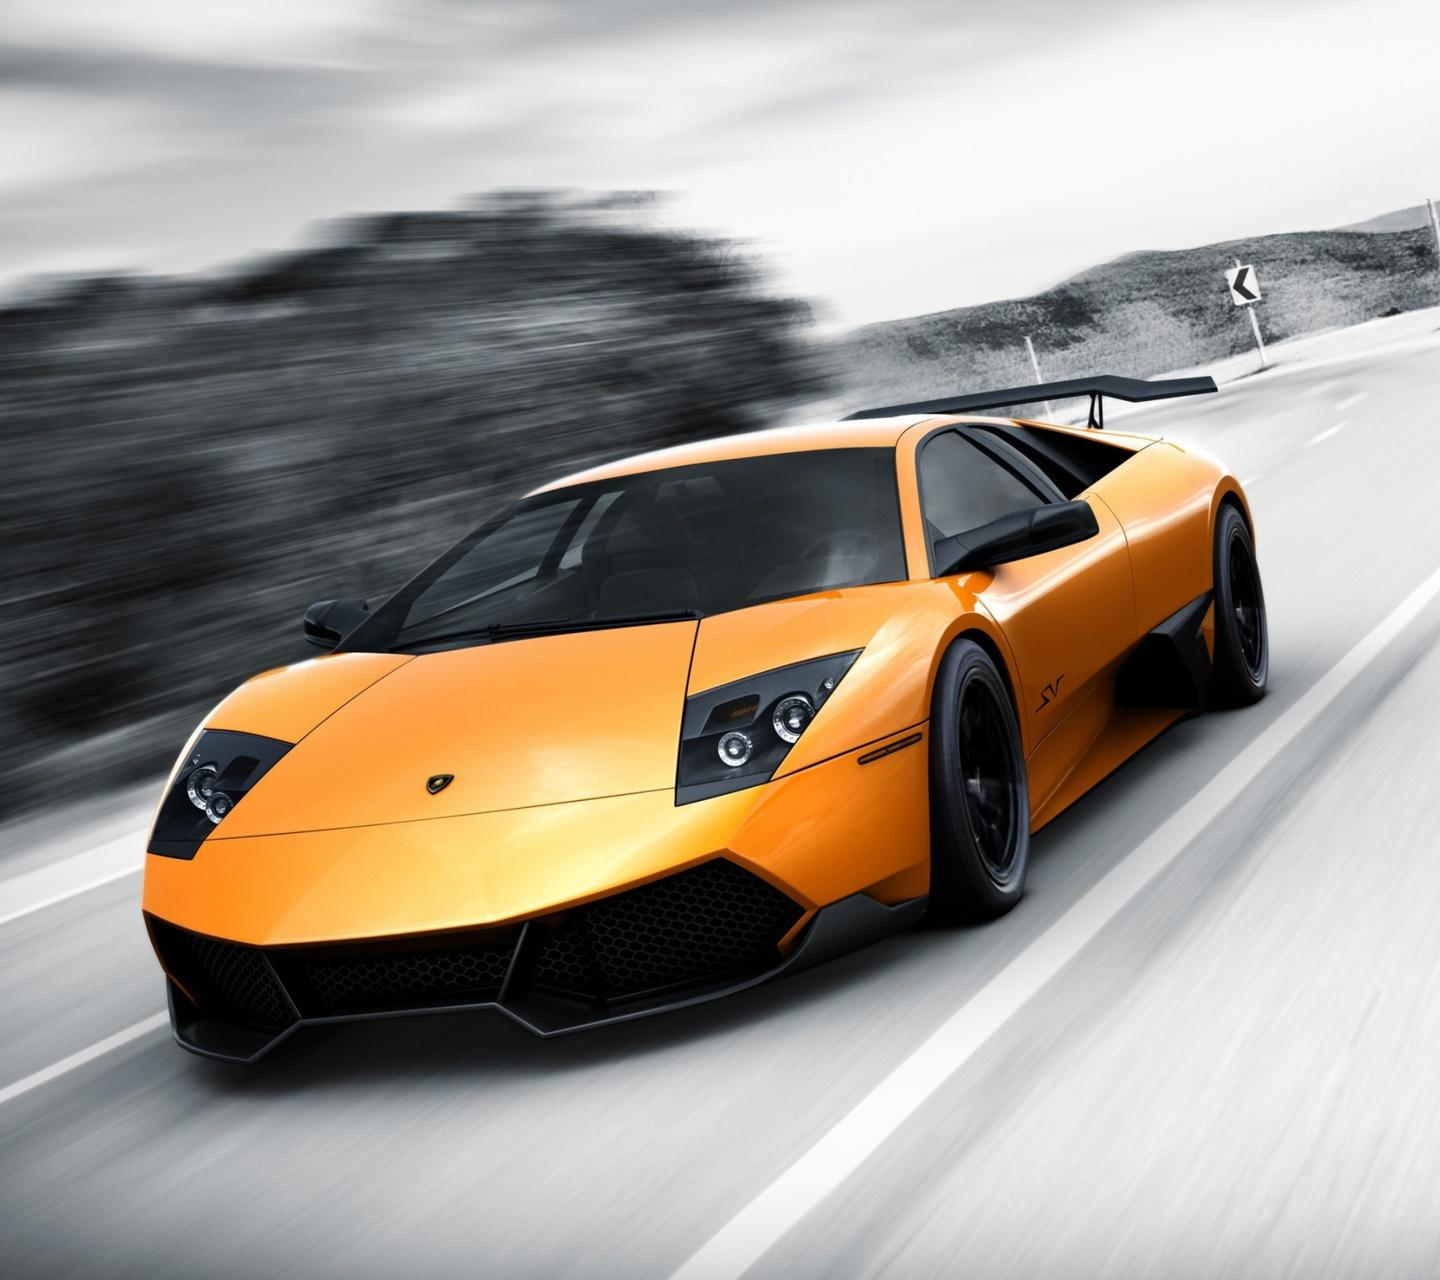 Lamborghini Murcielago Orange Sport Car PC Wallpaper HD Free